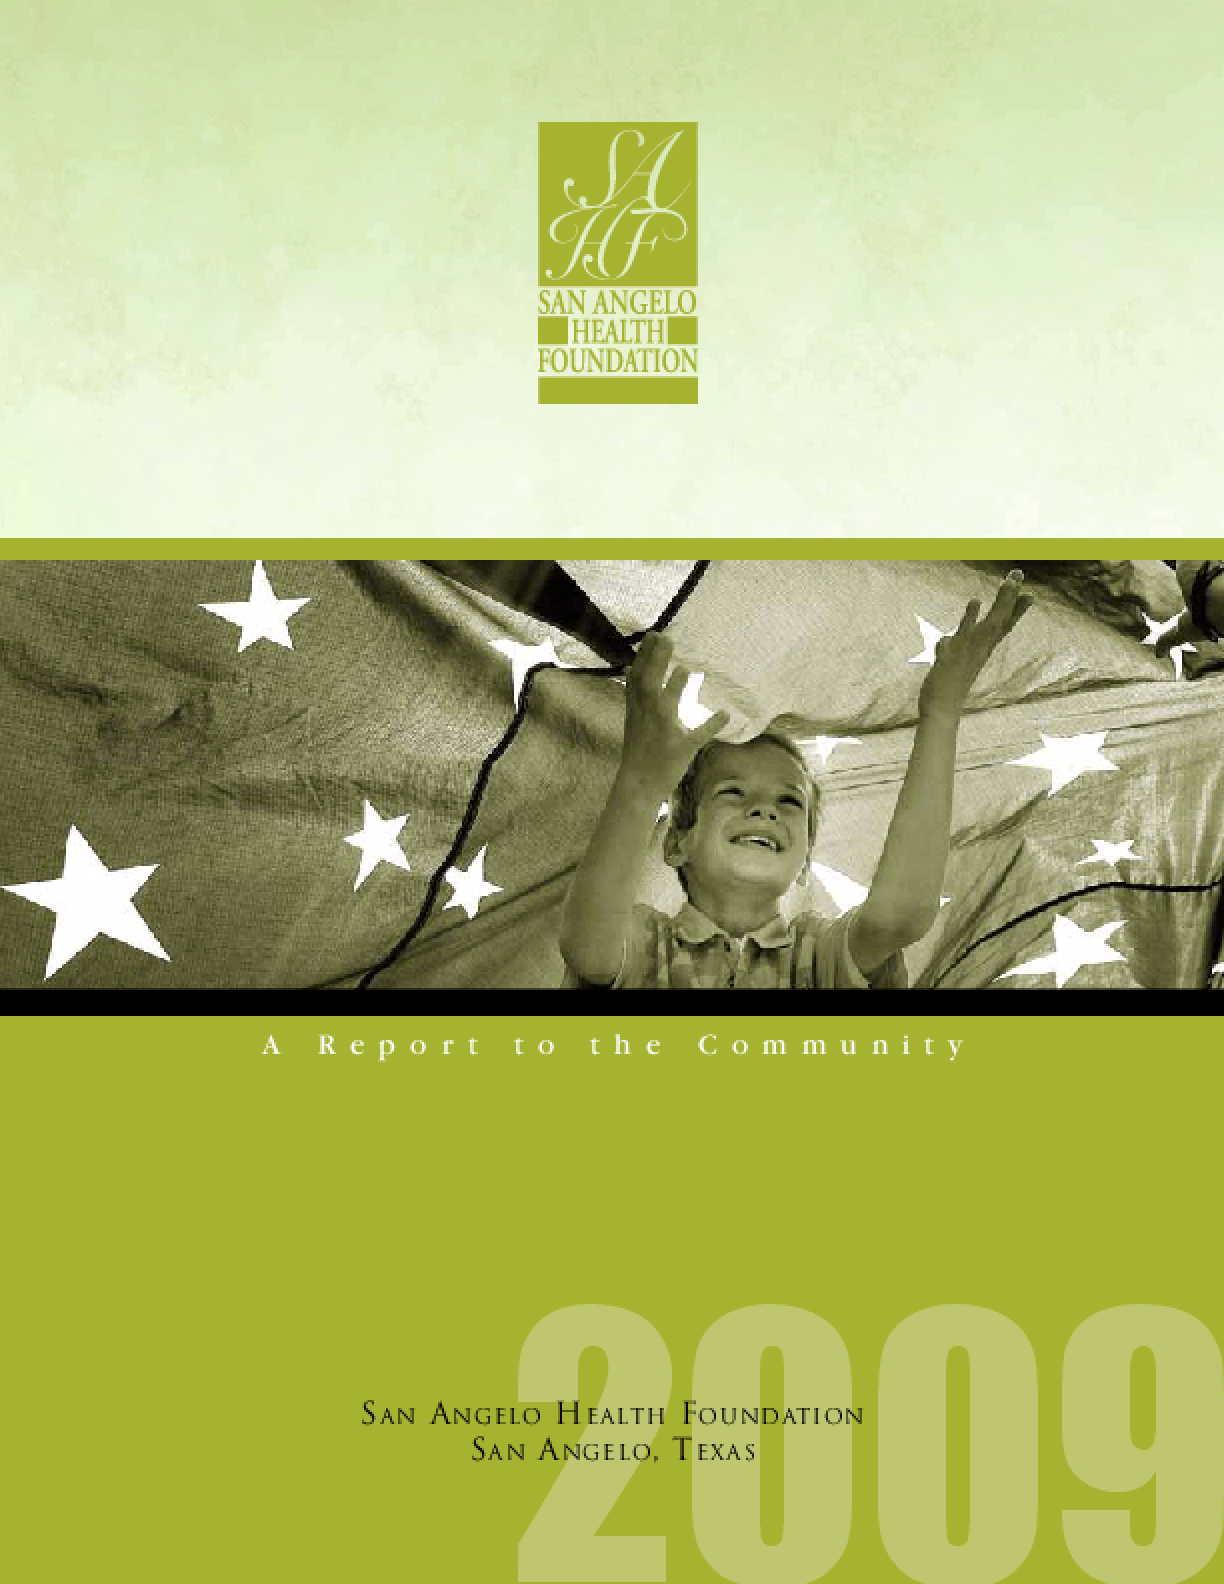 San Angelo Health Foundation - 2009 Annual Report